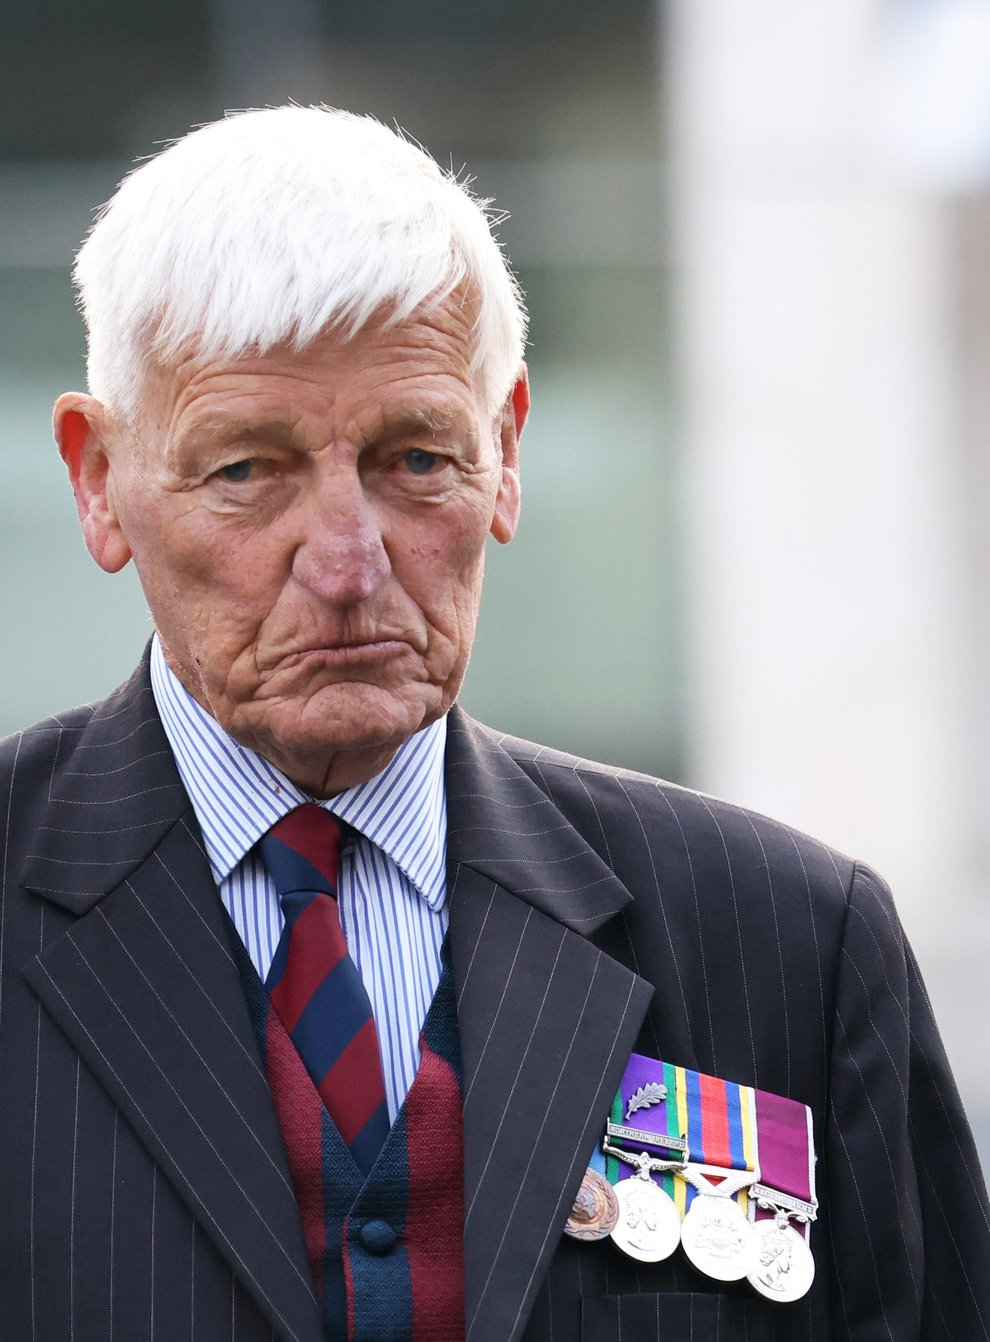 Dennis Hutchings, 80, a former member of the Life Guards regiment, has pleaded not guilty to the attempted murder of John Pat Cunningham in Co Tyrone in 1974 (Peter Morrison/PA)